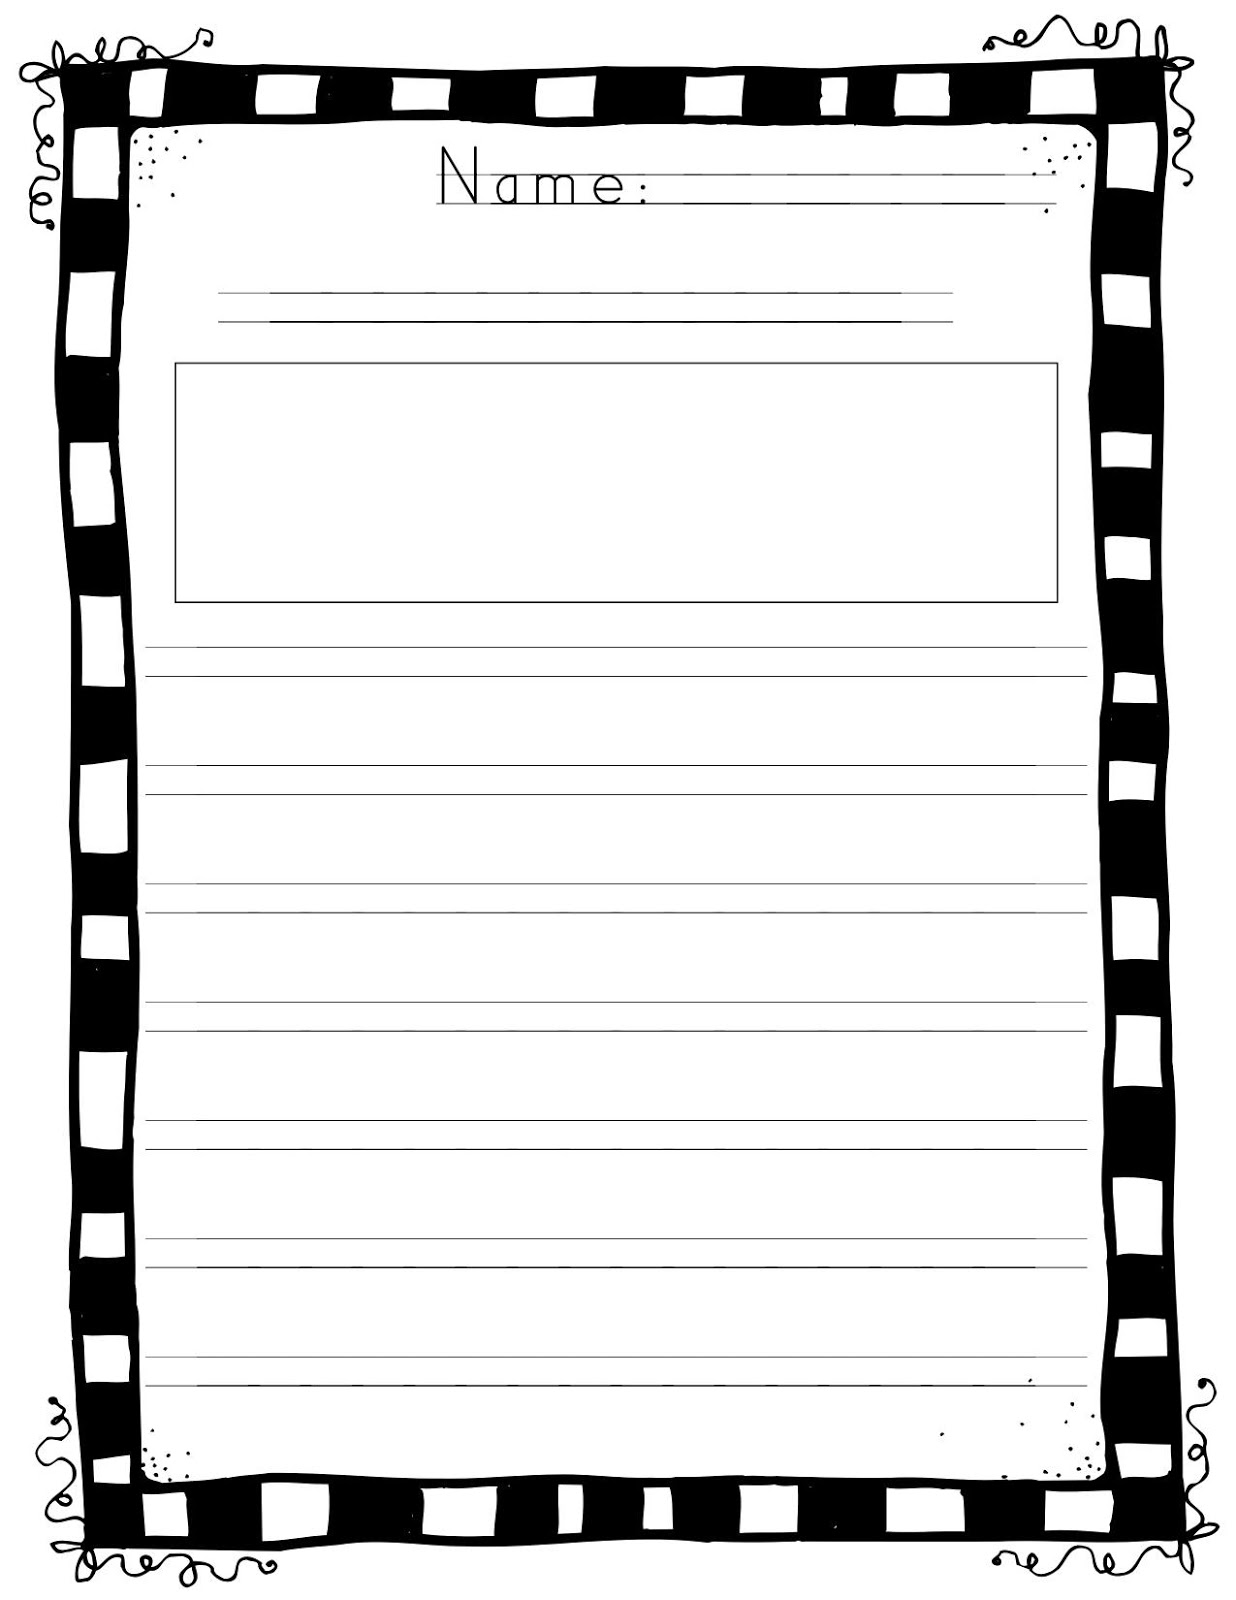 handwriting without tears paper printable